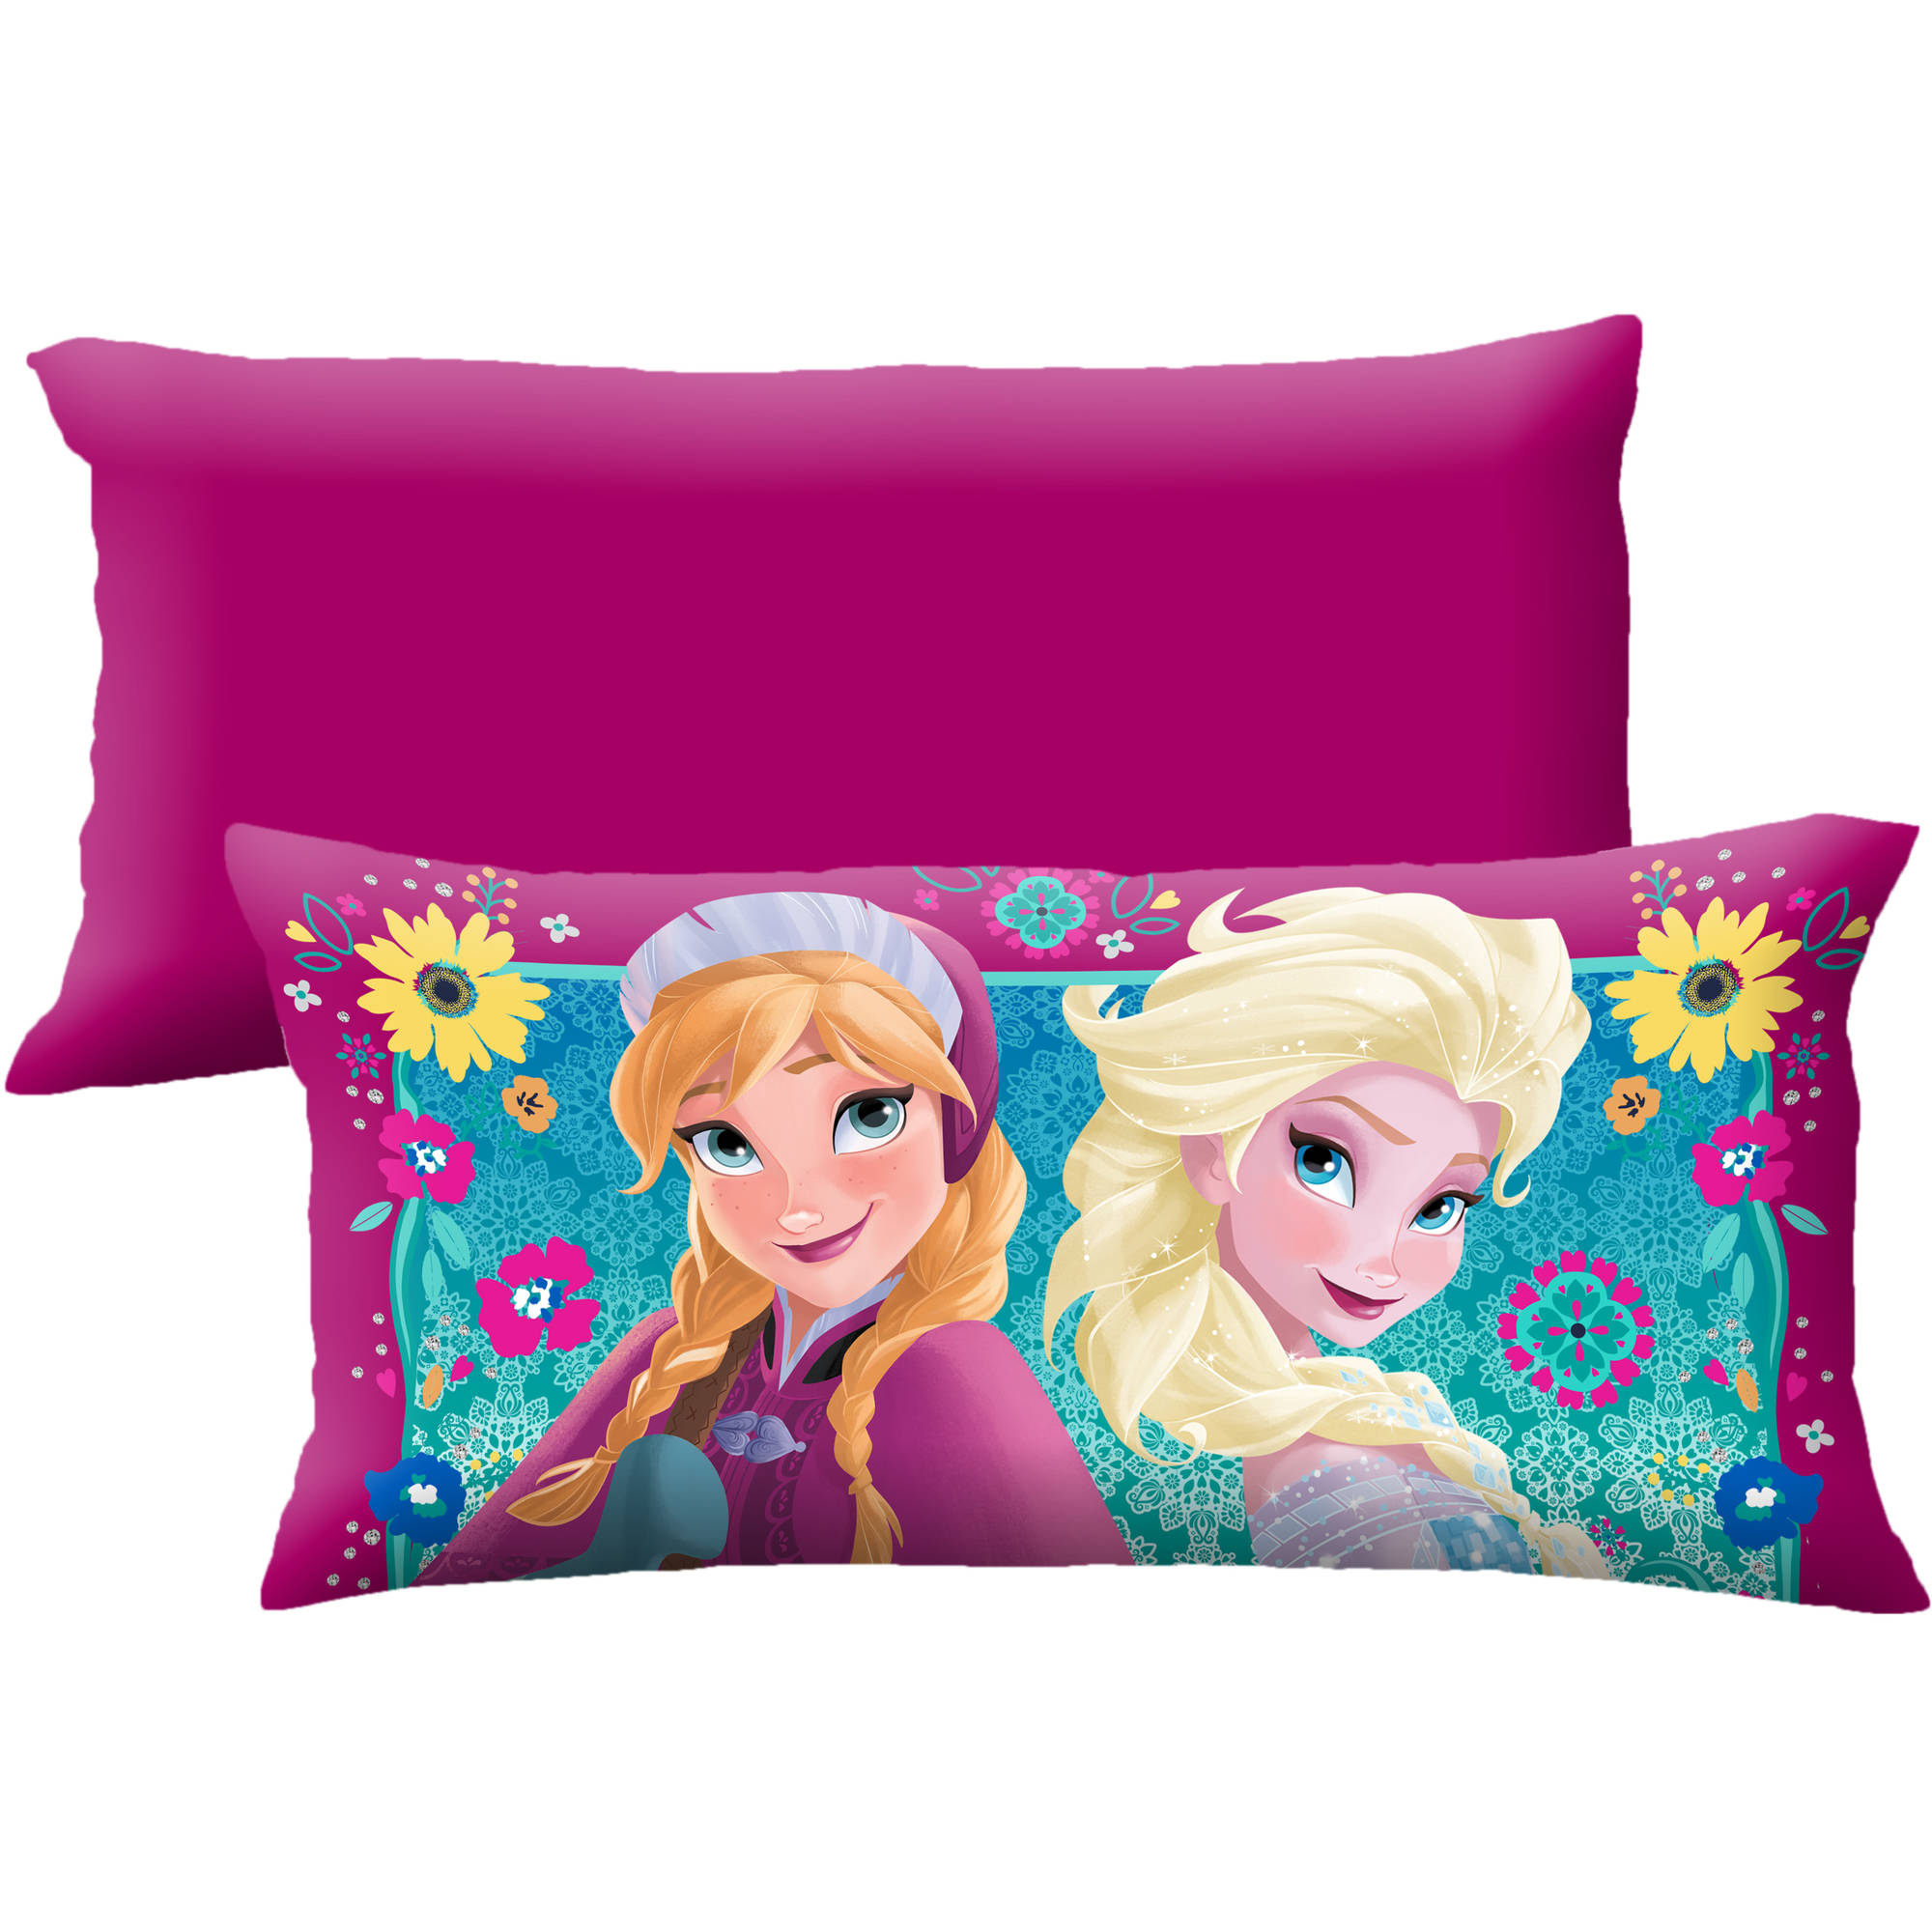 "Disney's Frozen 'Powerfull Sisterhood' 18"" x 36"" Body Pillow"